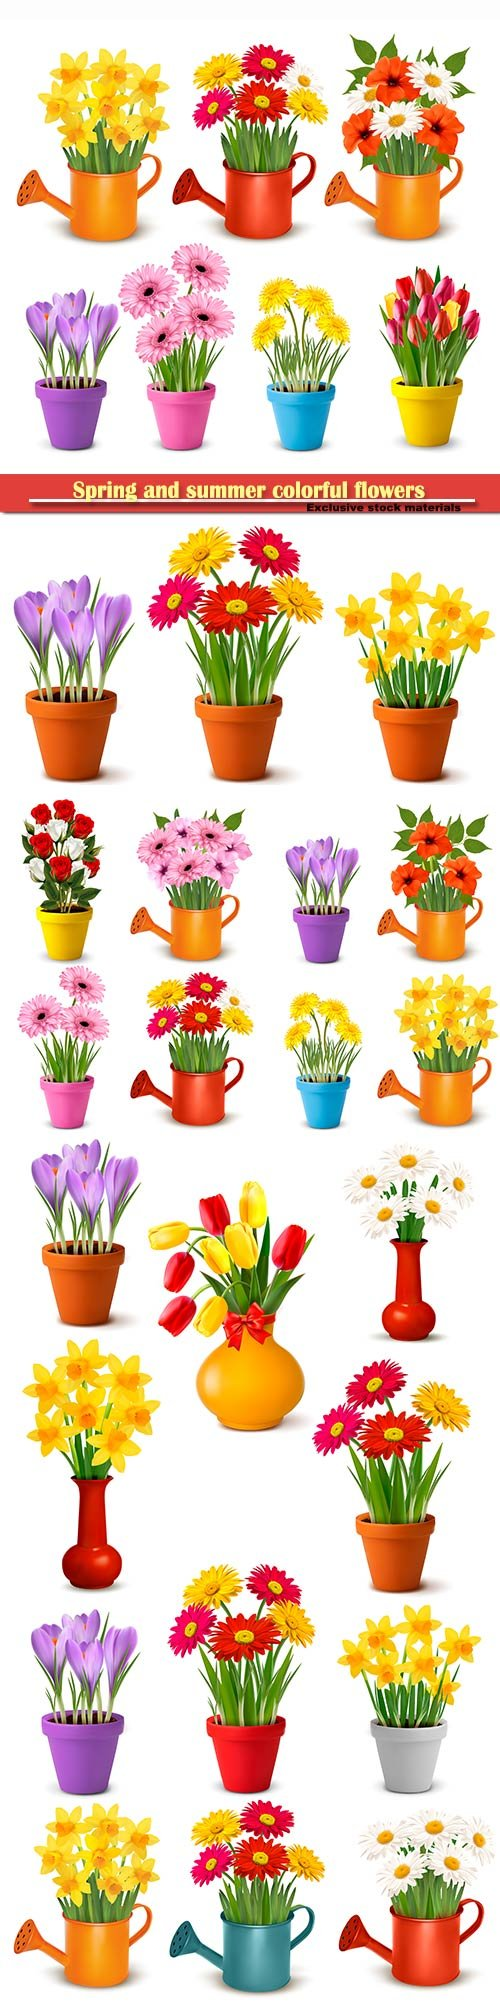 Spring and summer colorful flowers in pots